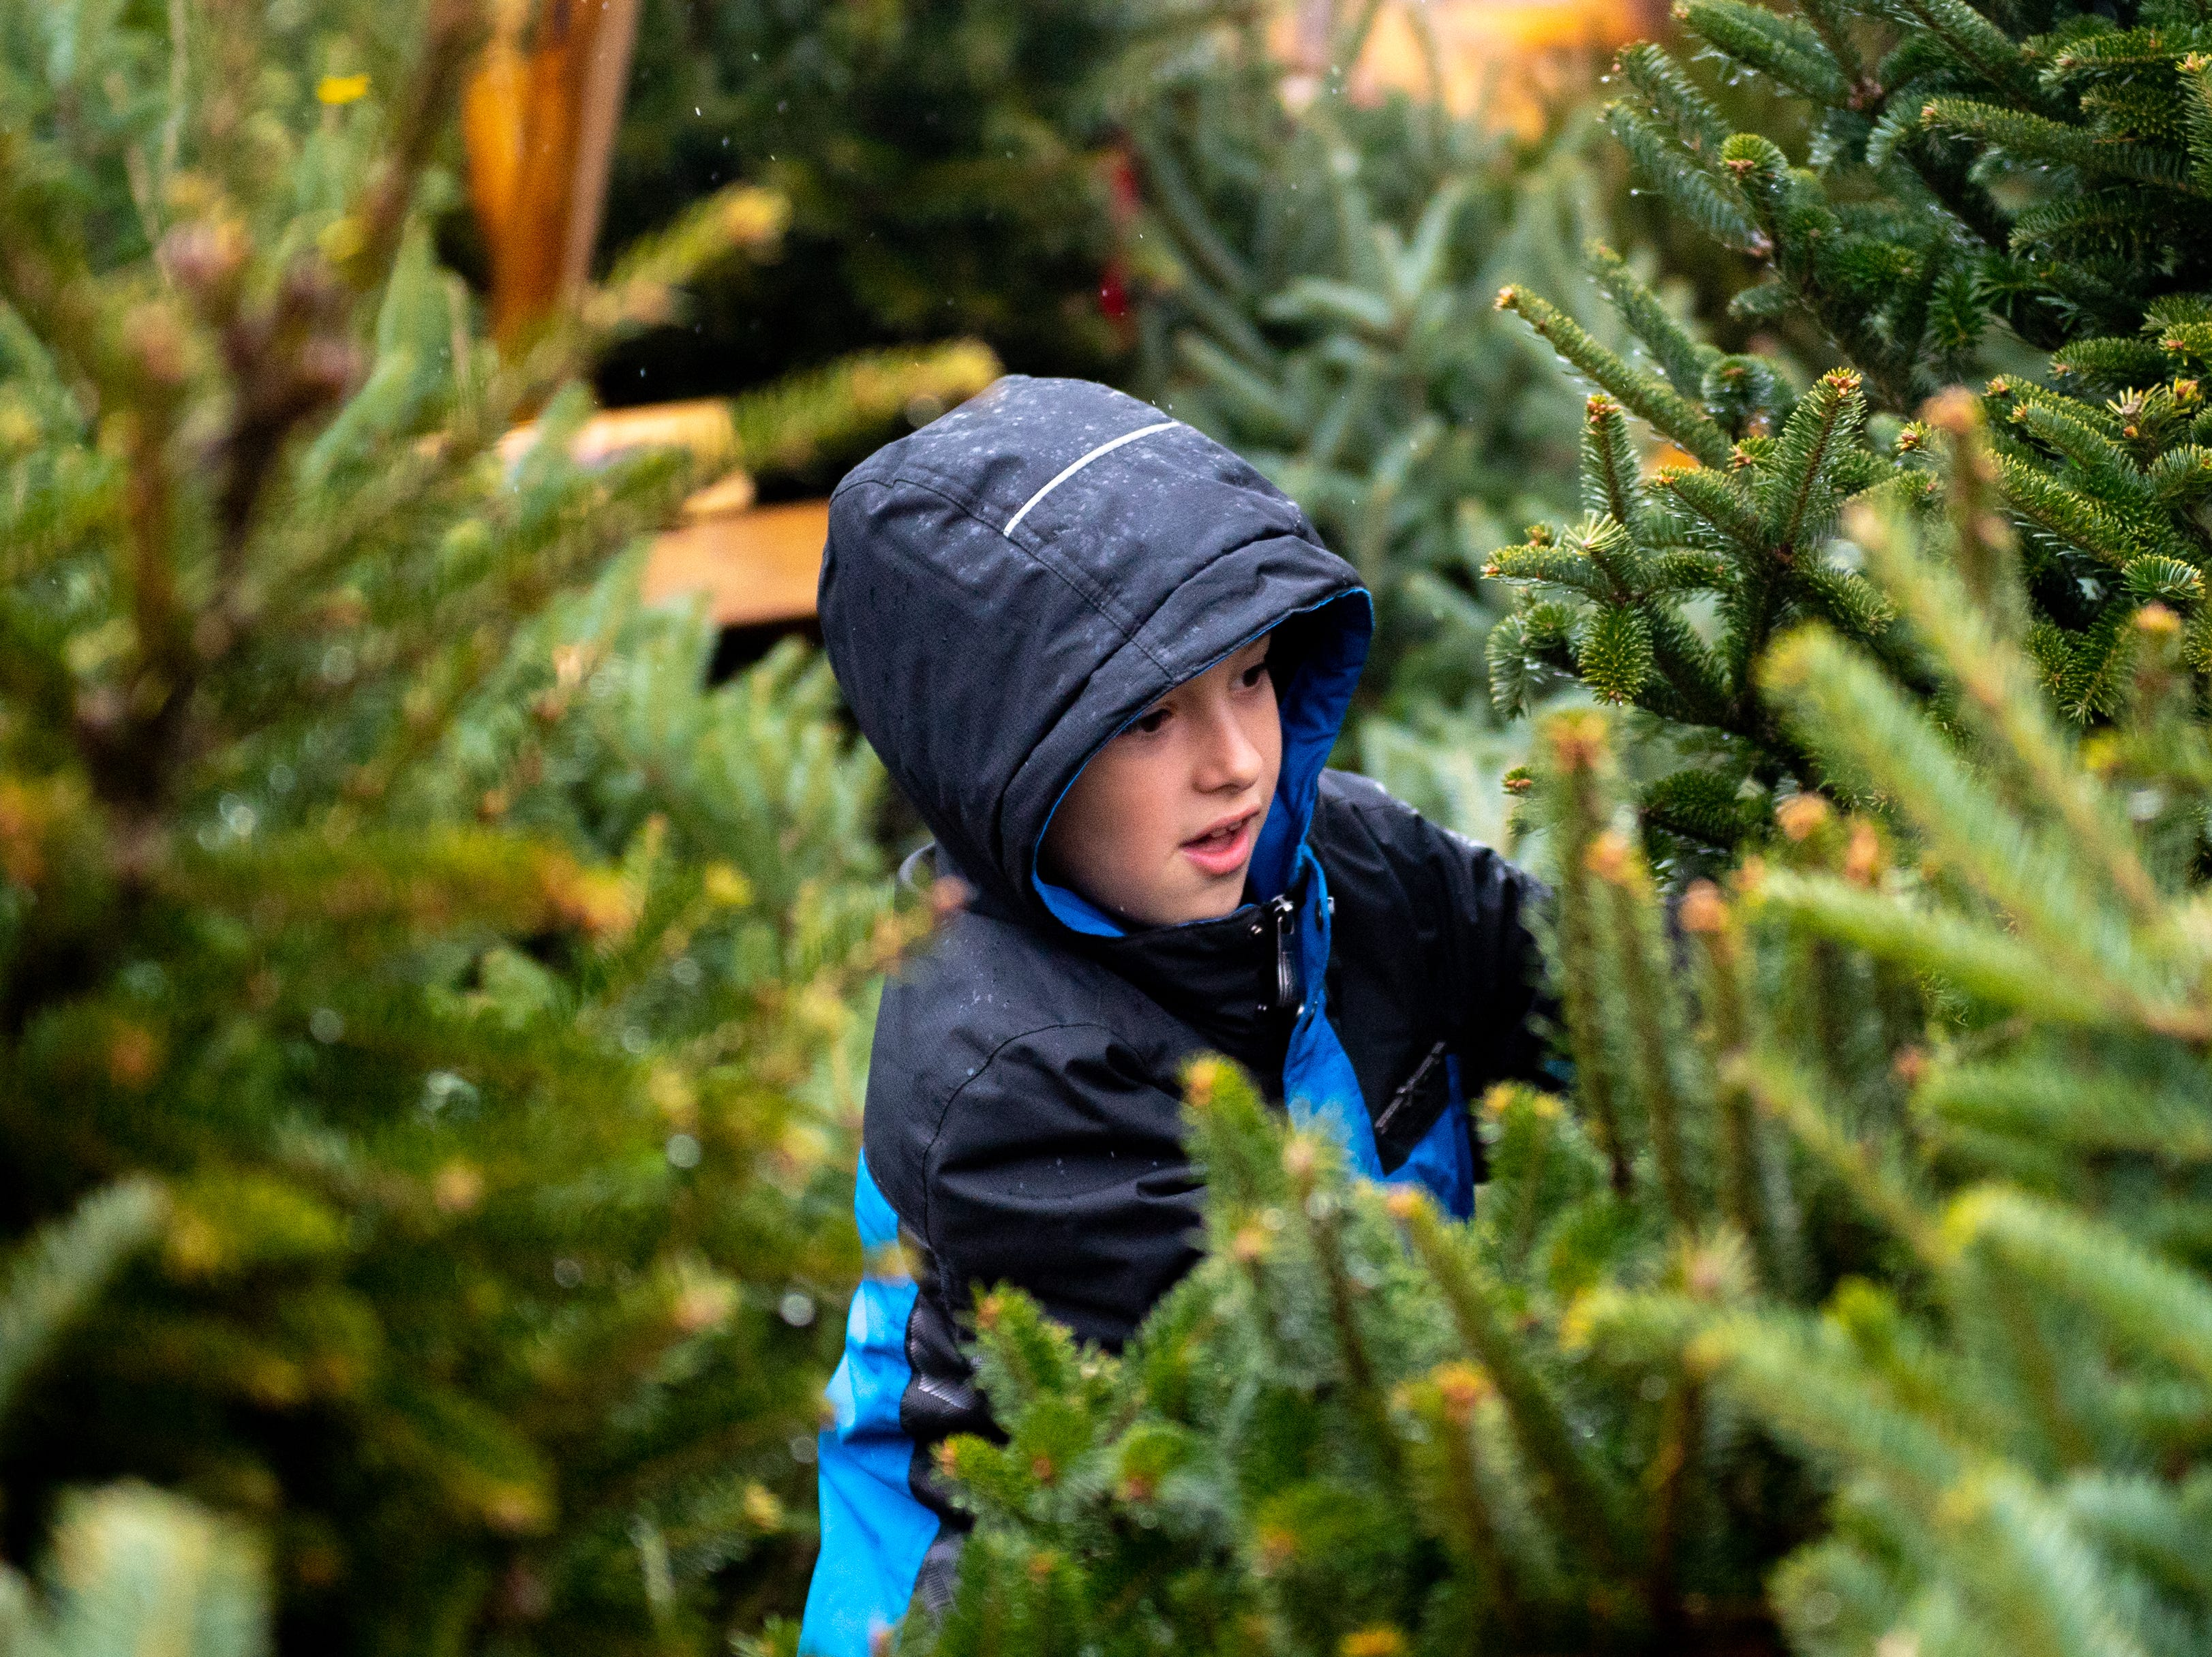 Colton Graver, 8, runs from tree to tree examining each one thoroughly at the annual Christmas Tree Sale in the parking lot of Ollie's Bargain Outlet in Springettsbury Township. Tree sales benefit the Central Pennsylvania Food Bank.